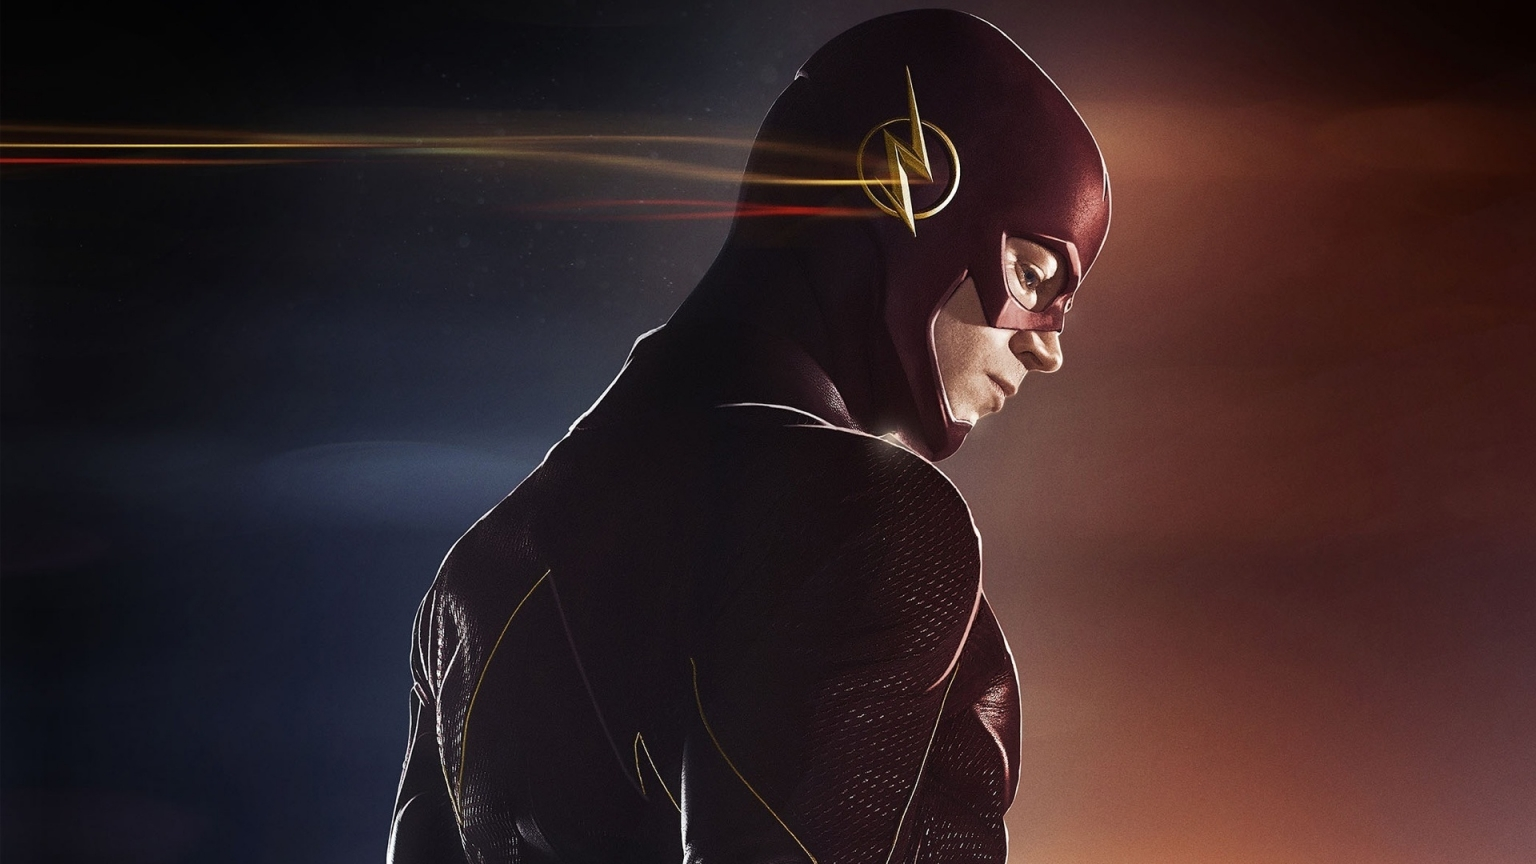 The Flash Tv Show for 1536 x 864 HDTV resolution